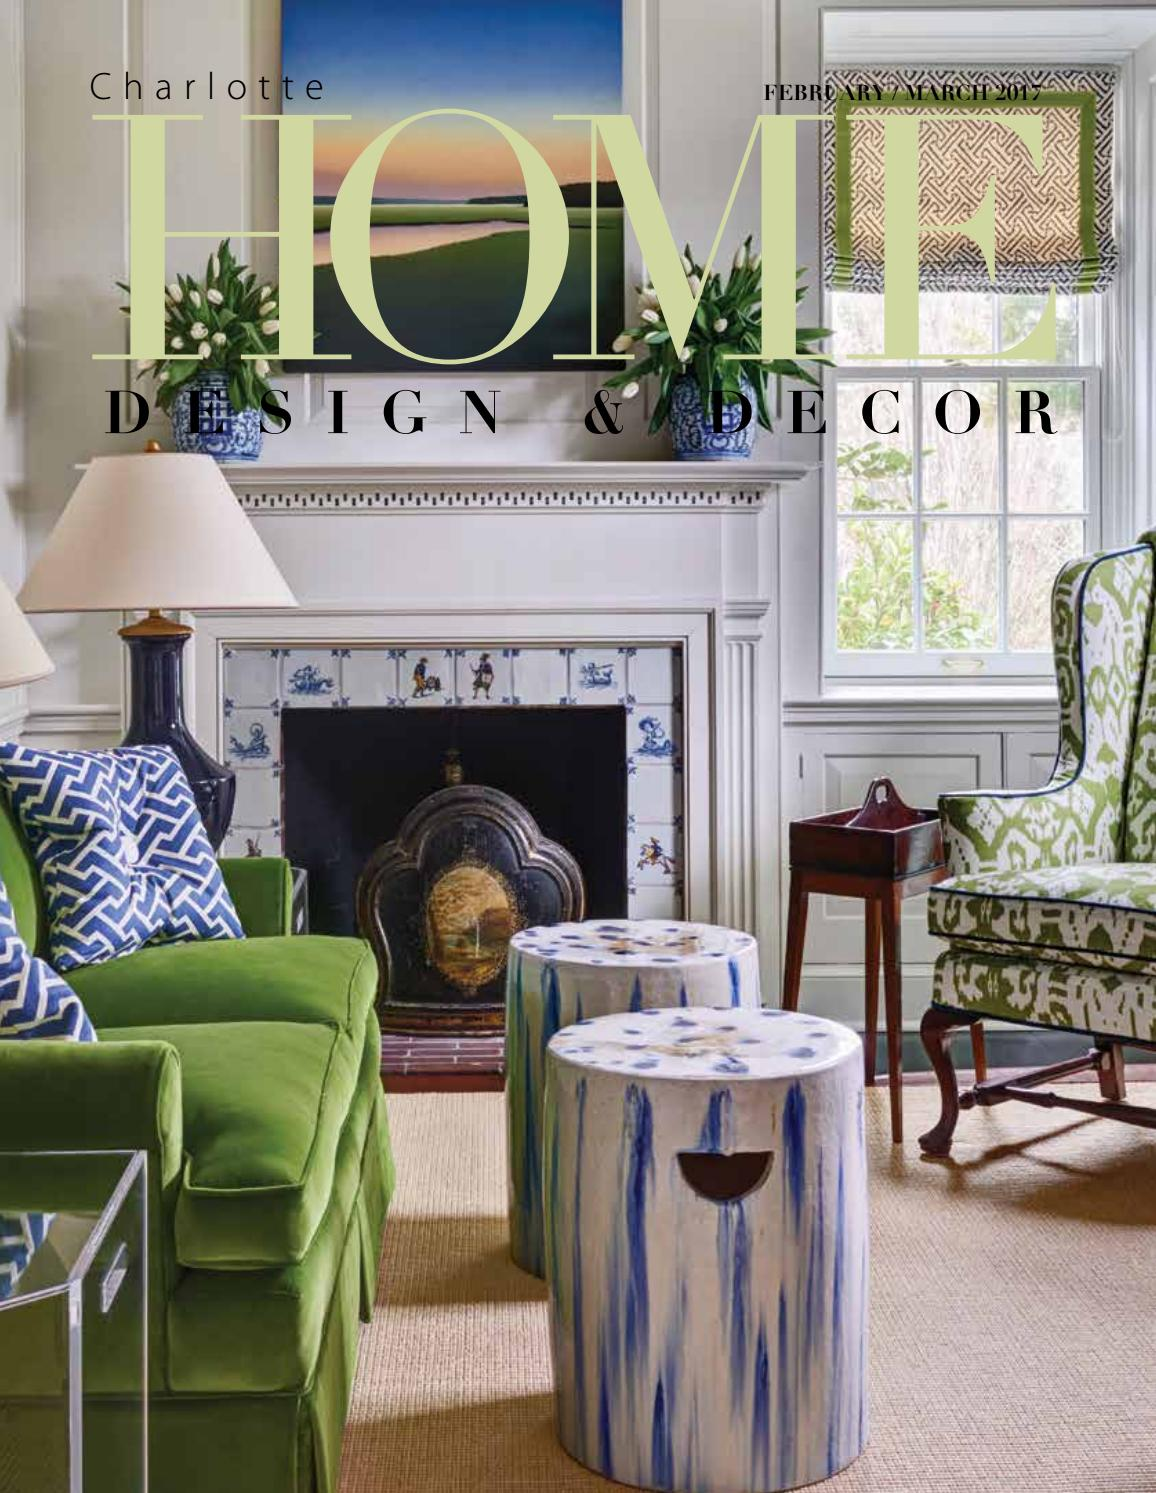 Home Design Decor Magazine Feb/March 2017 Issue By Home Design U0026 Decor  Magazine   Issuu